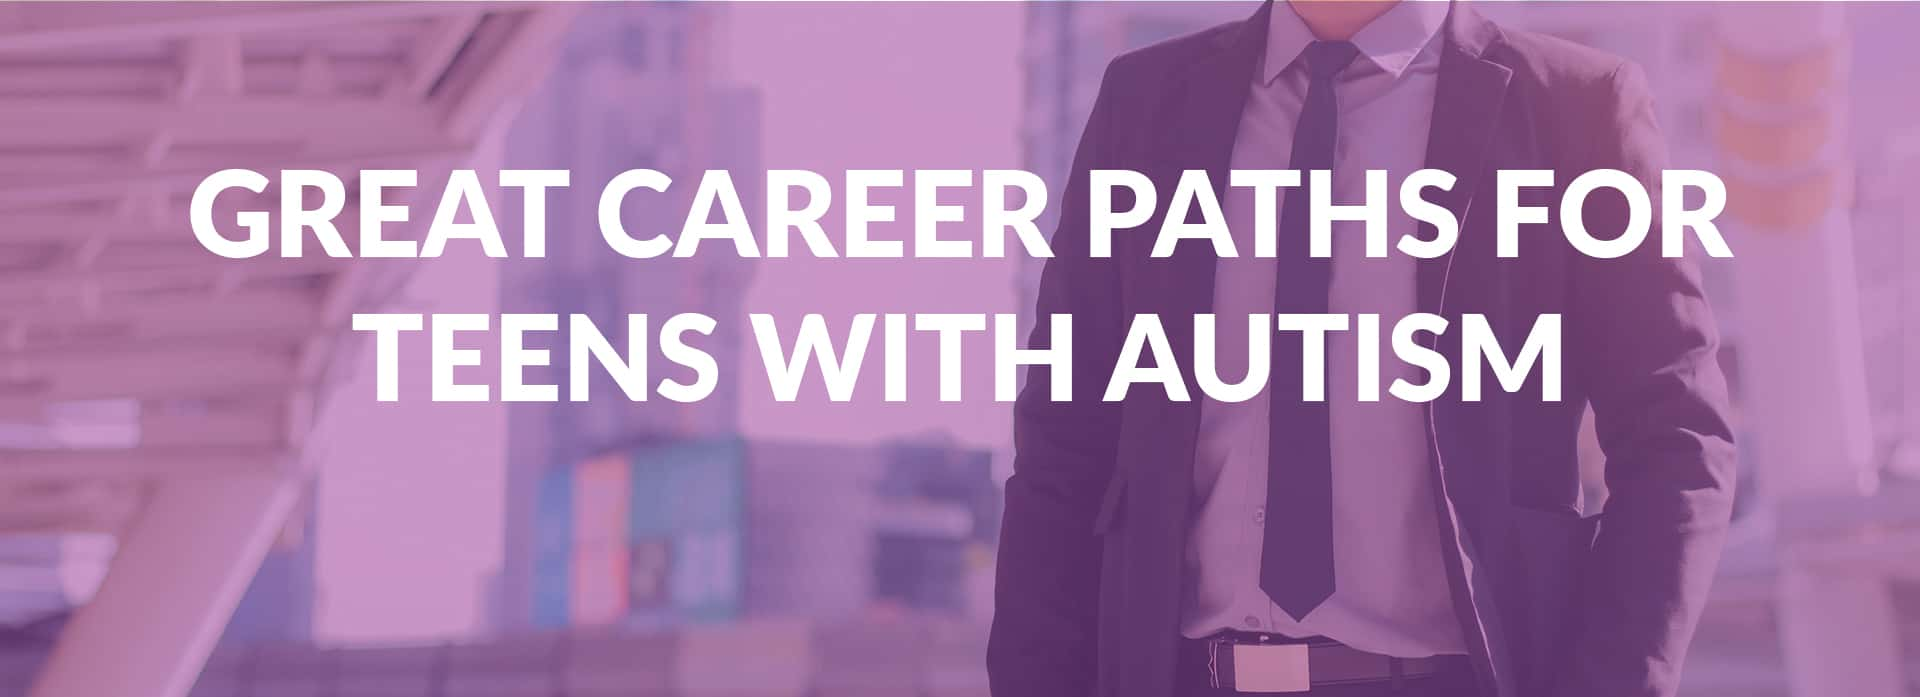 Great Career Paths For Teens With Autism